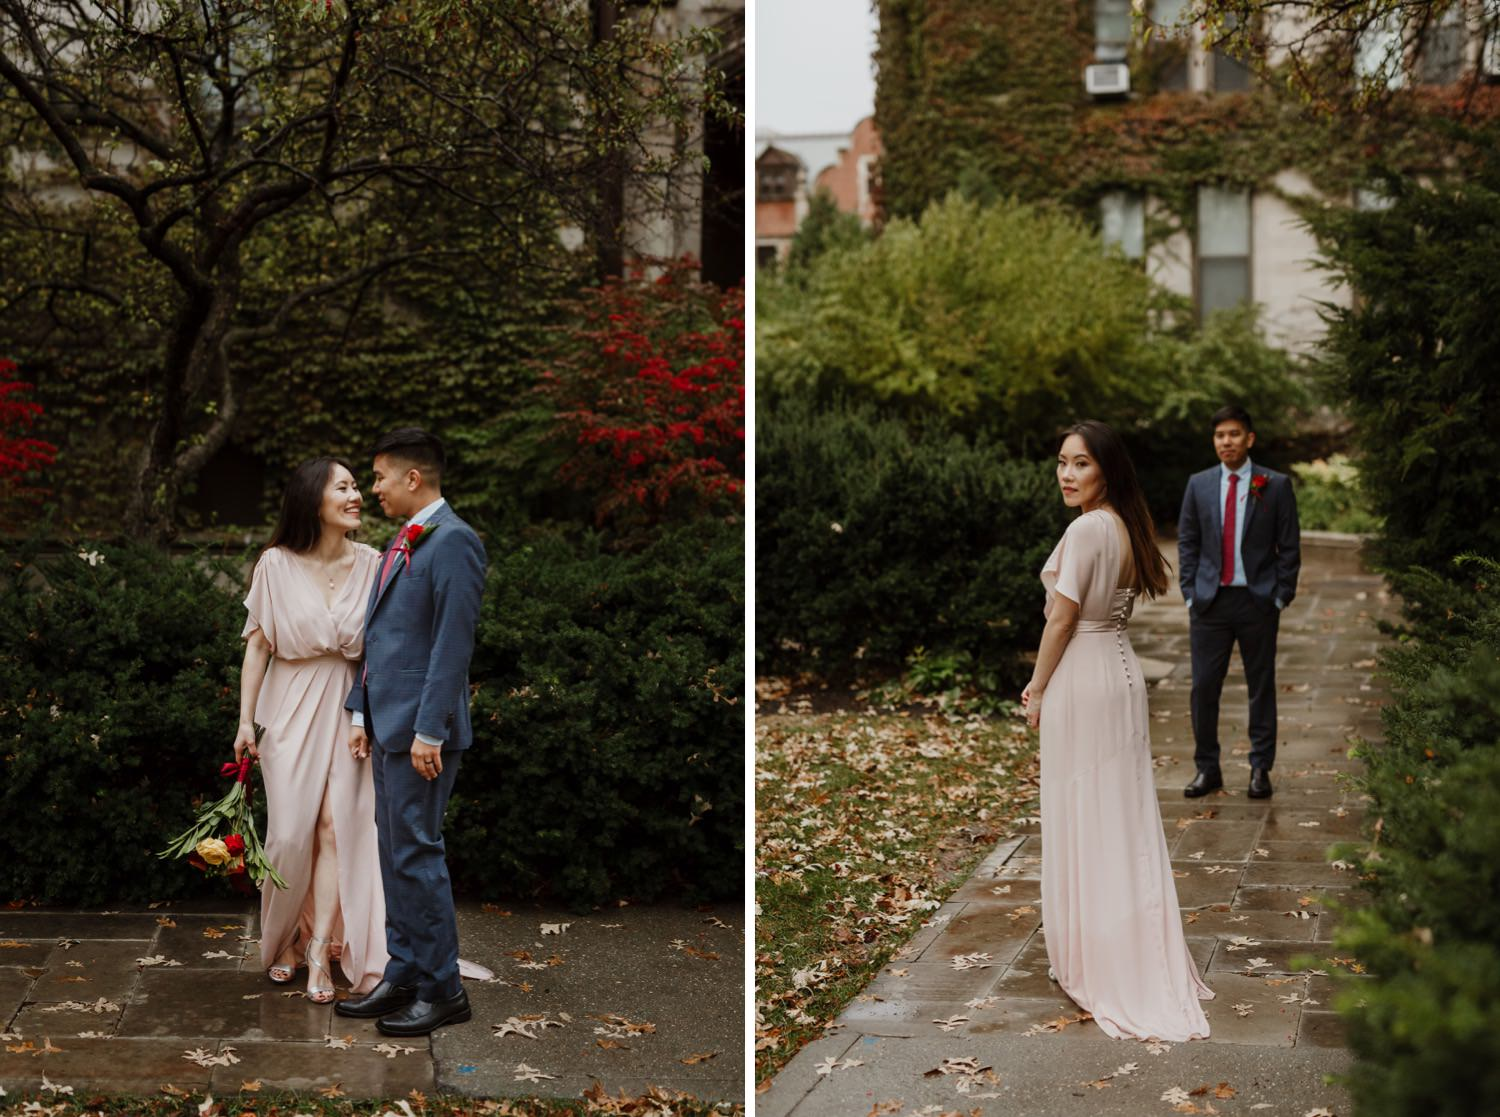 Bride and groom eloping at University of Chicago